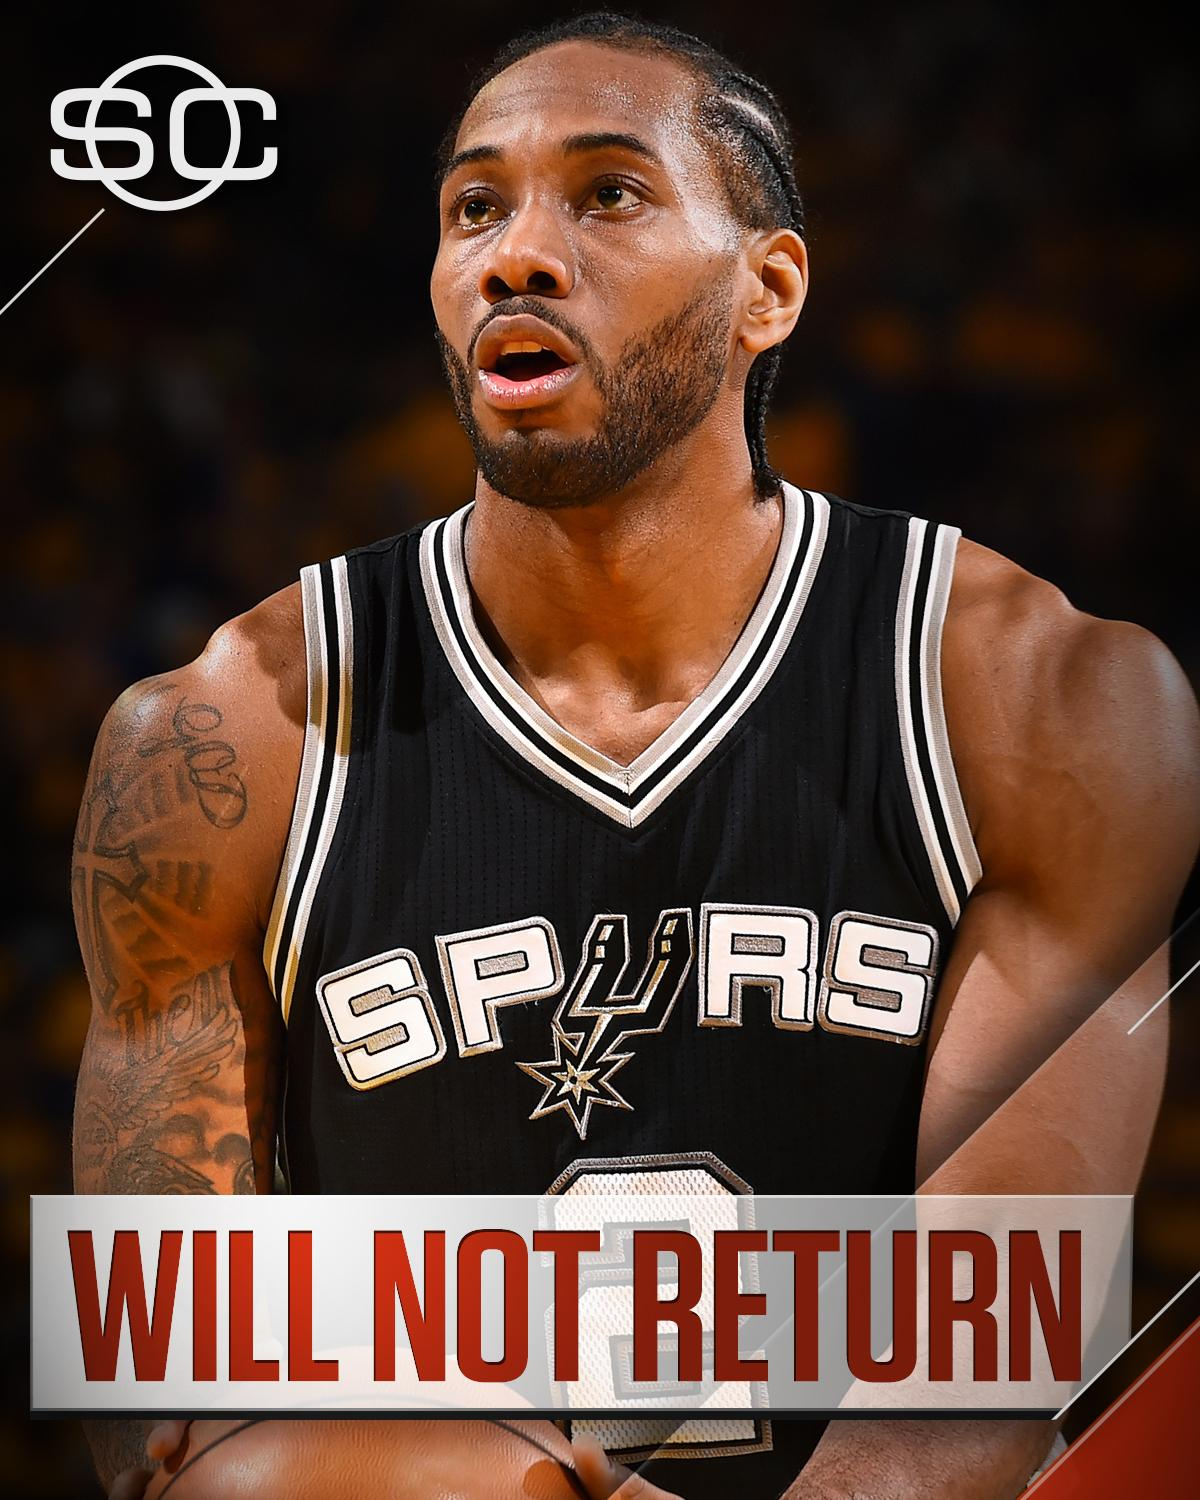 Kawhi Leonard will not return to today's game after spraining his left ankle in the 3rd quarter. https://t.co/f4DlRnrnOQ